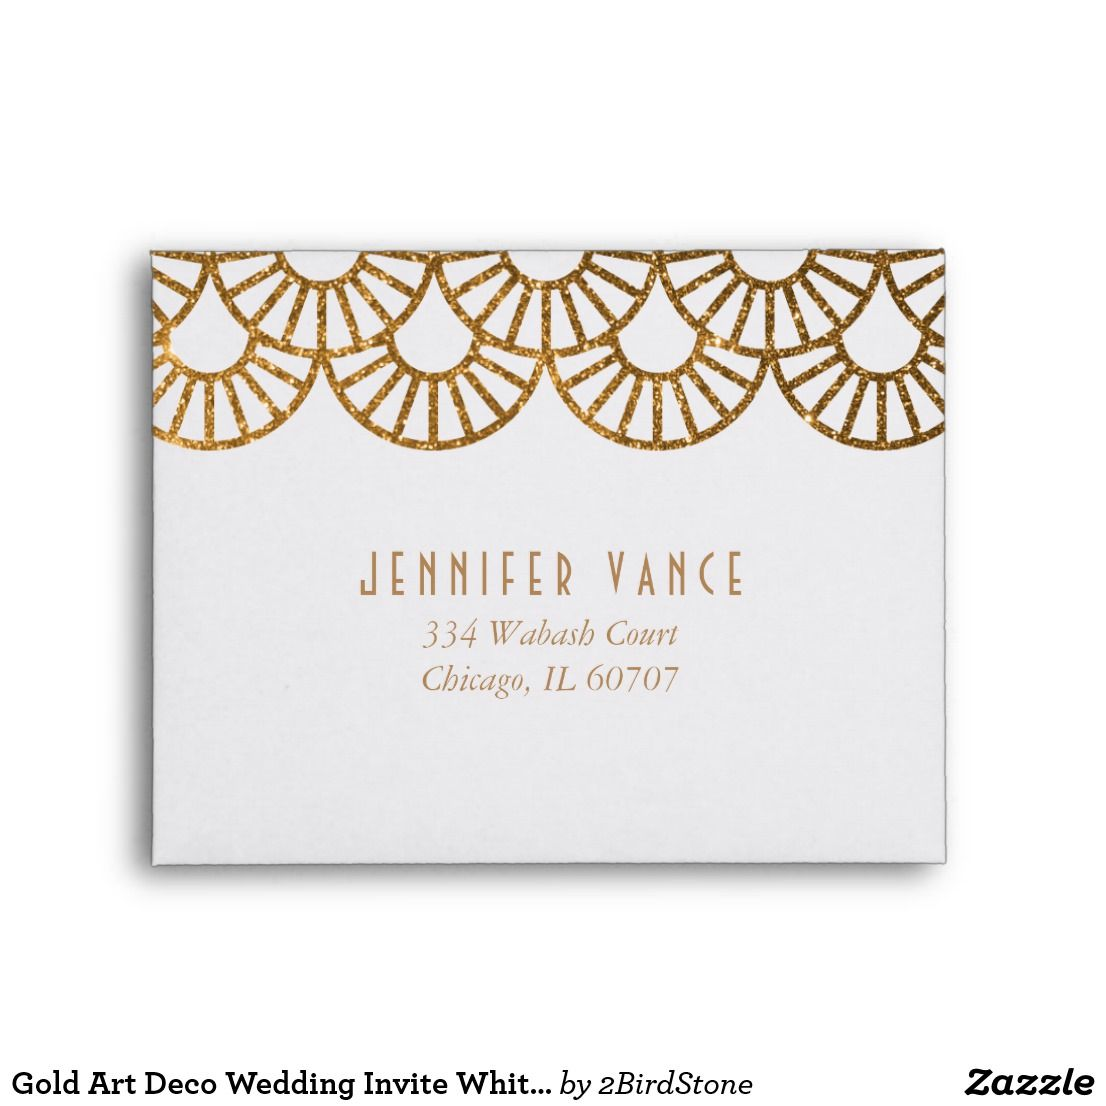 Gold Art Deco Wedding Invite White Reply Envelope | { Wedding ...